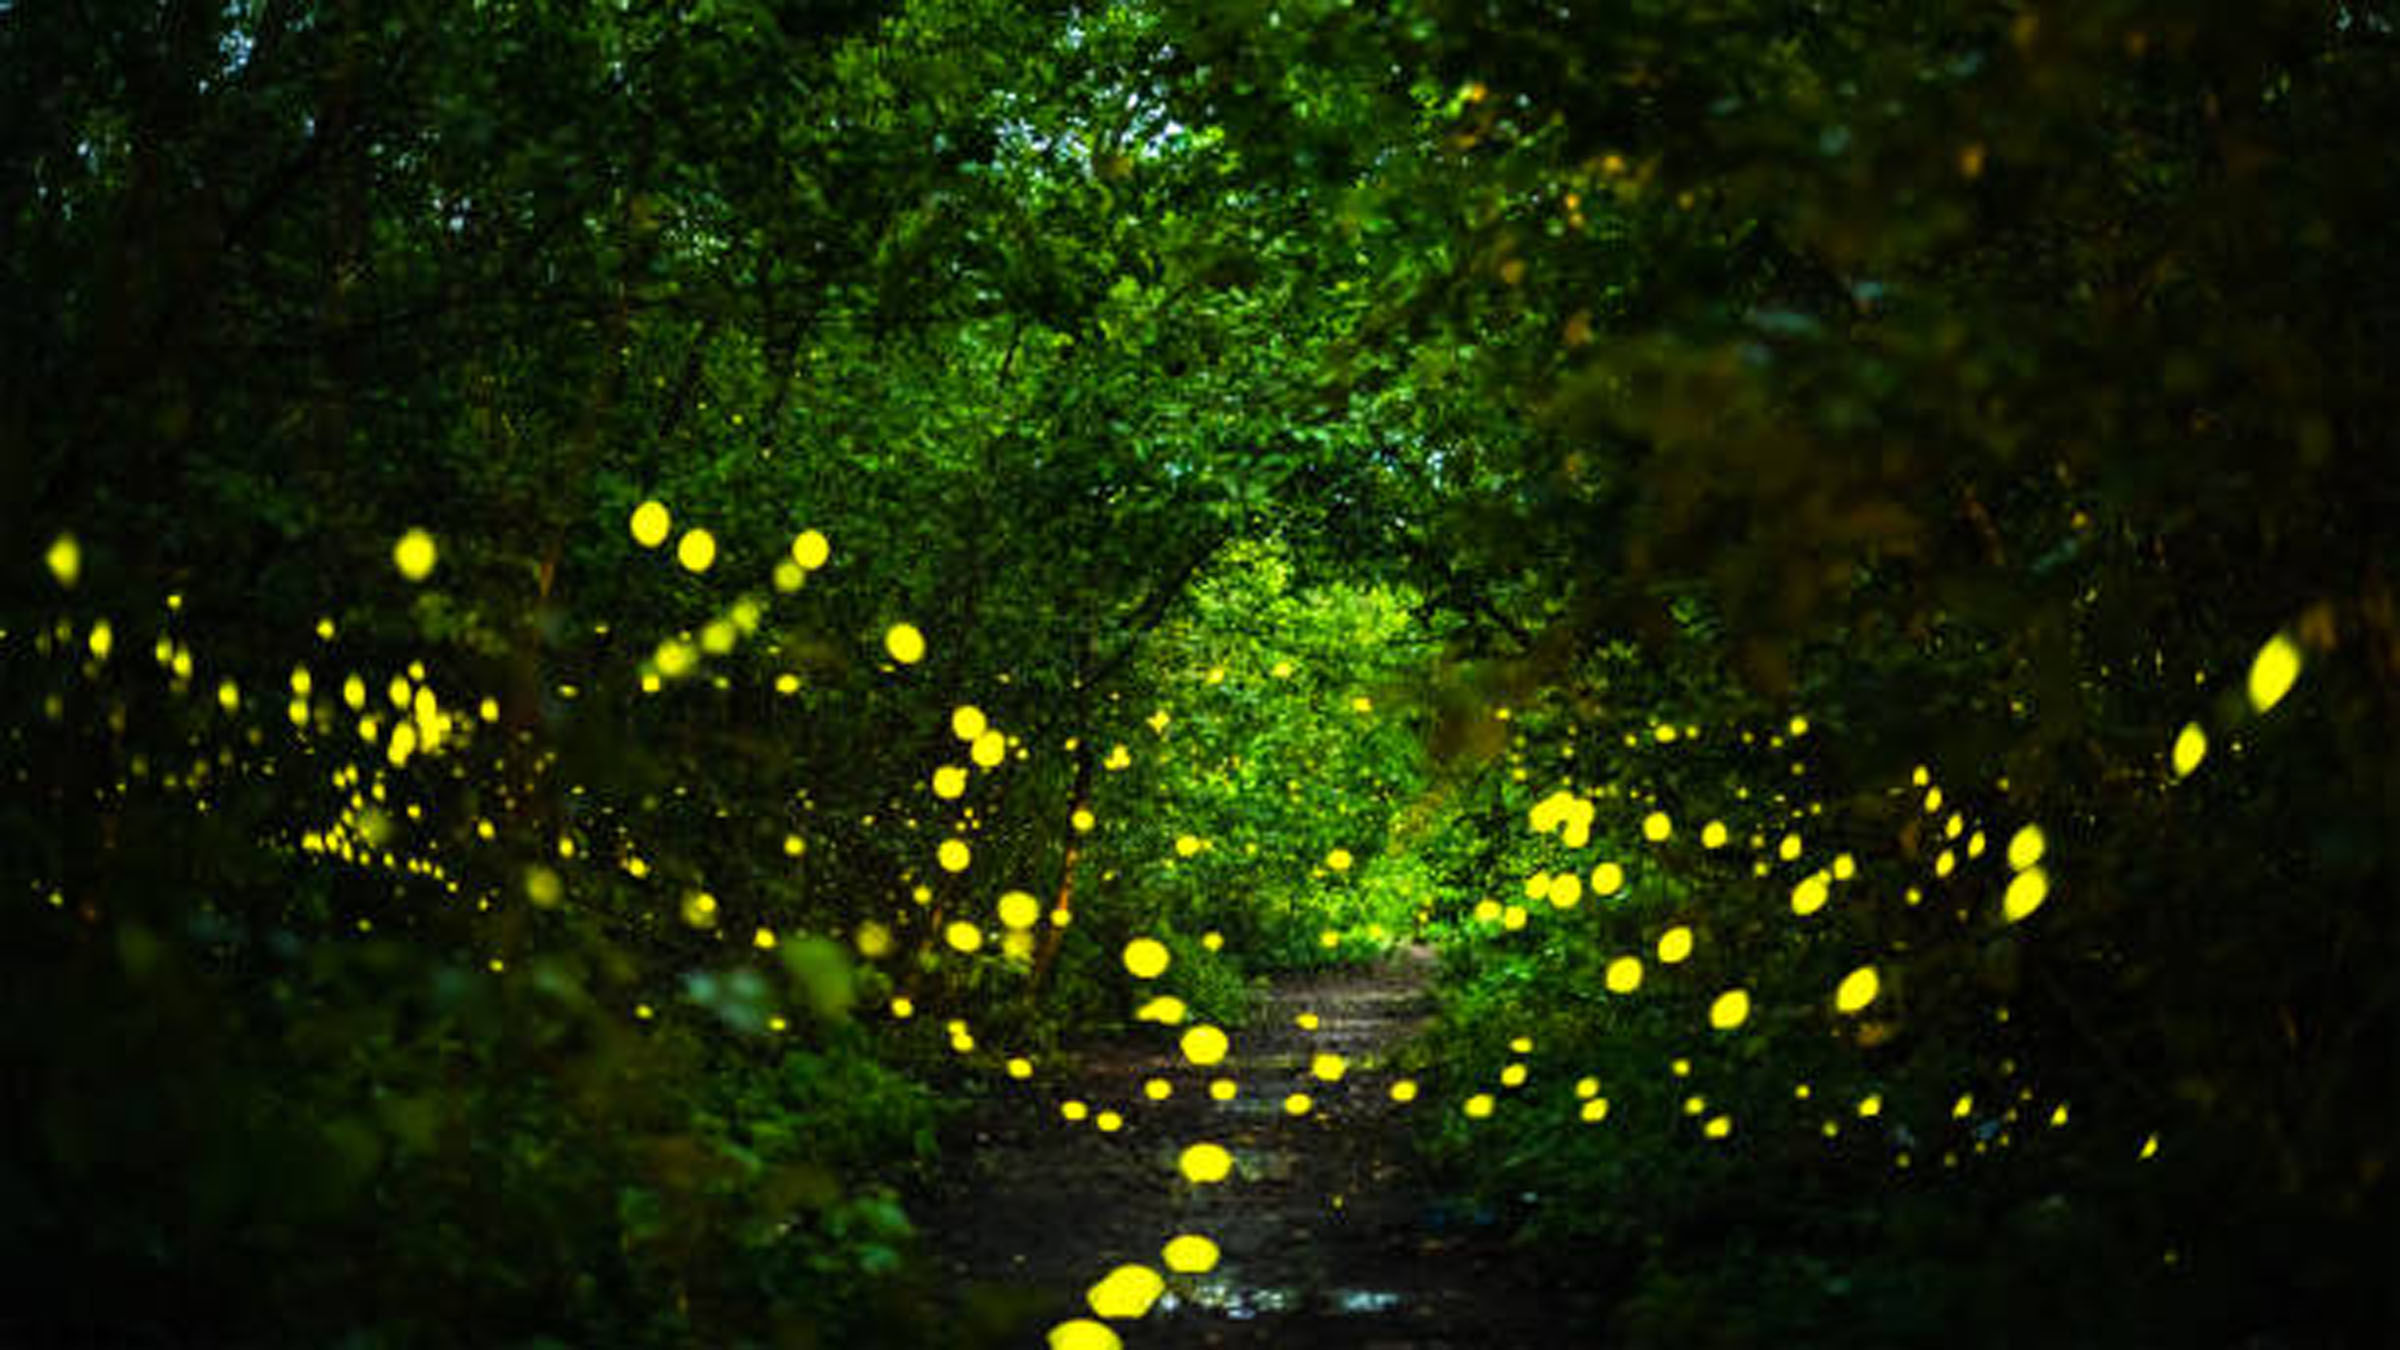 Fireflies or lightning bugs flying at night in the forest.